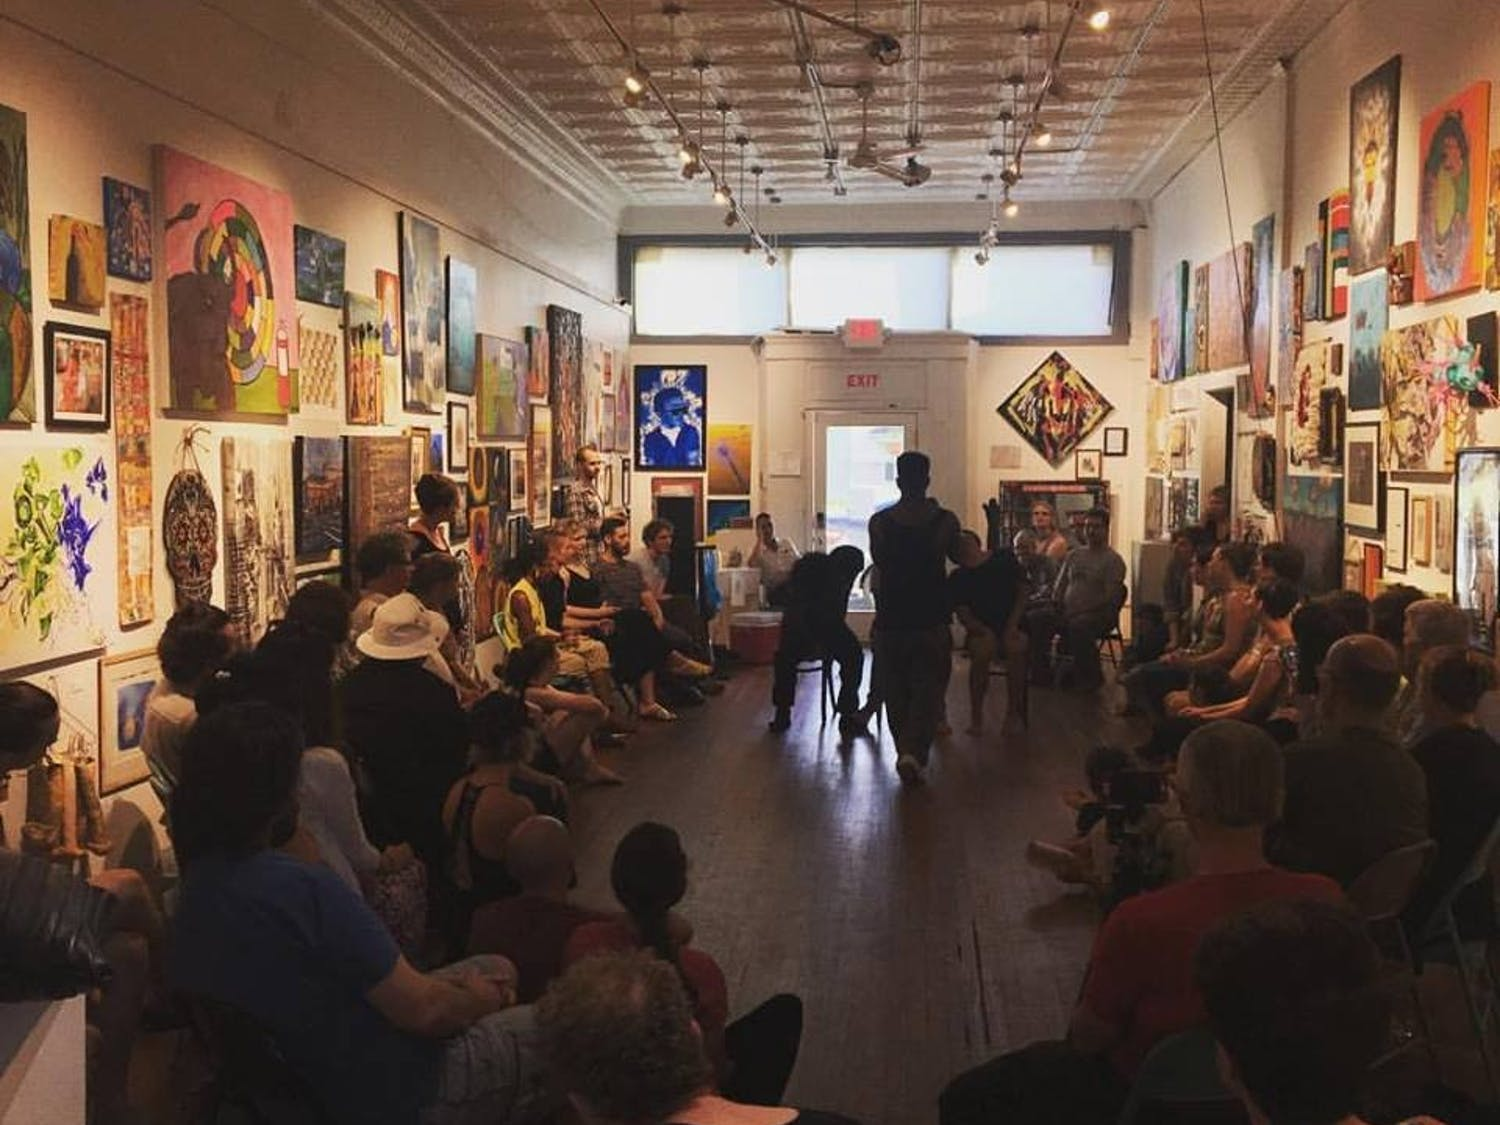 The C.N.O.T.E (Create Nothing Other Than Excellence) Foundation is hosting a sit-in series this Friday at The Carrack. Photo courtesy of The Carrack.